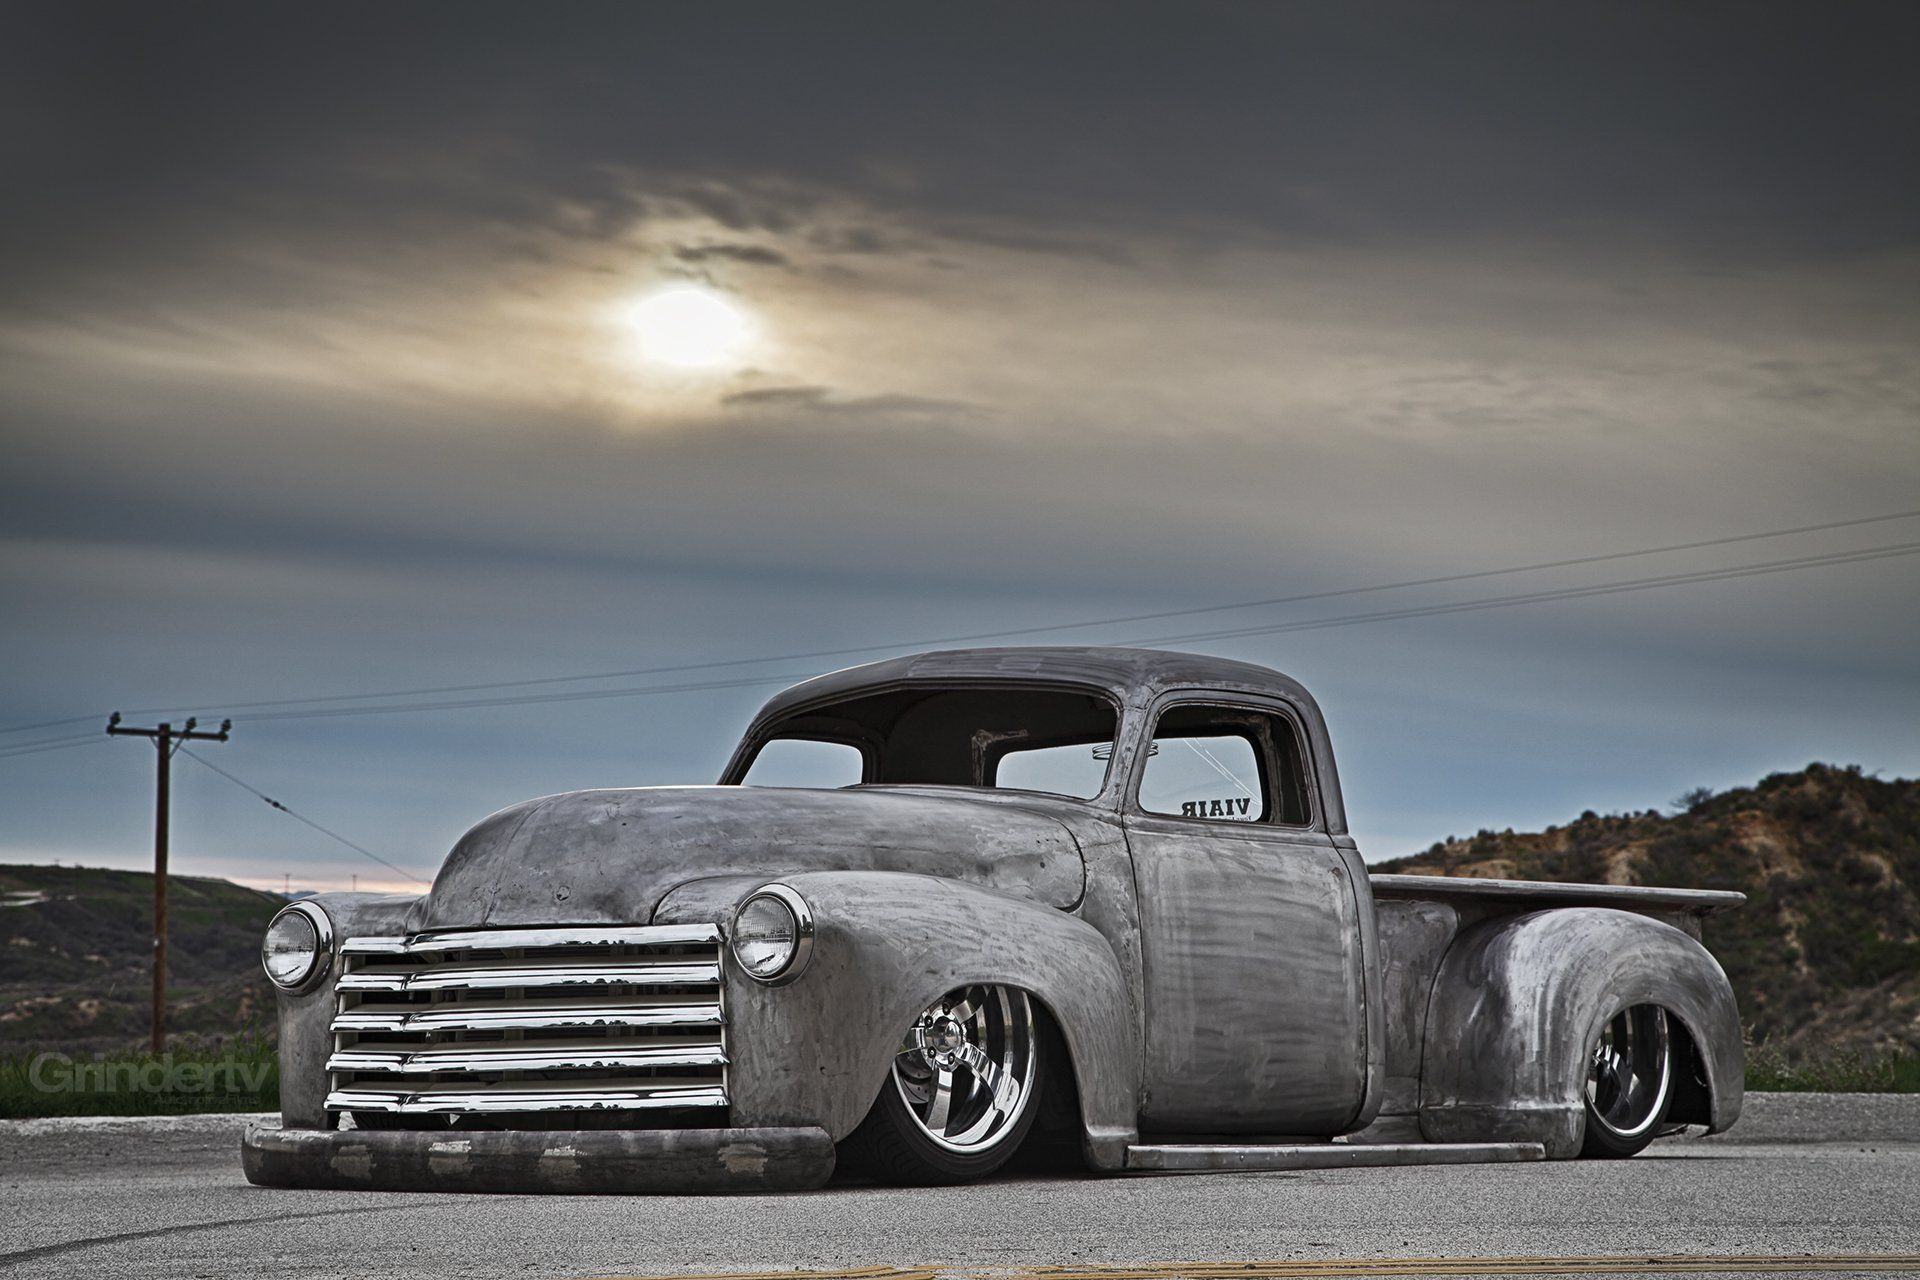 Classic Truck Wallpapers - Top Free